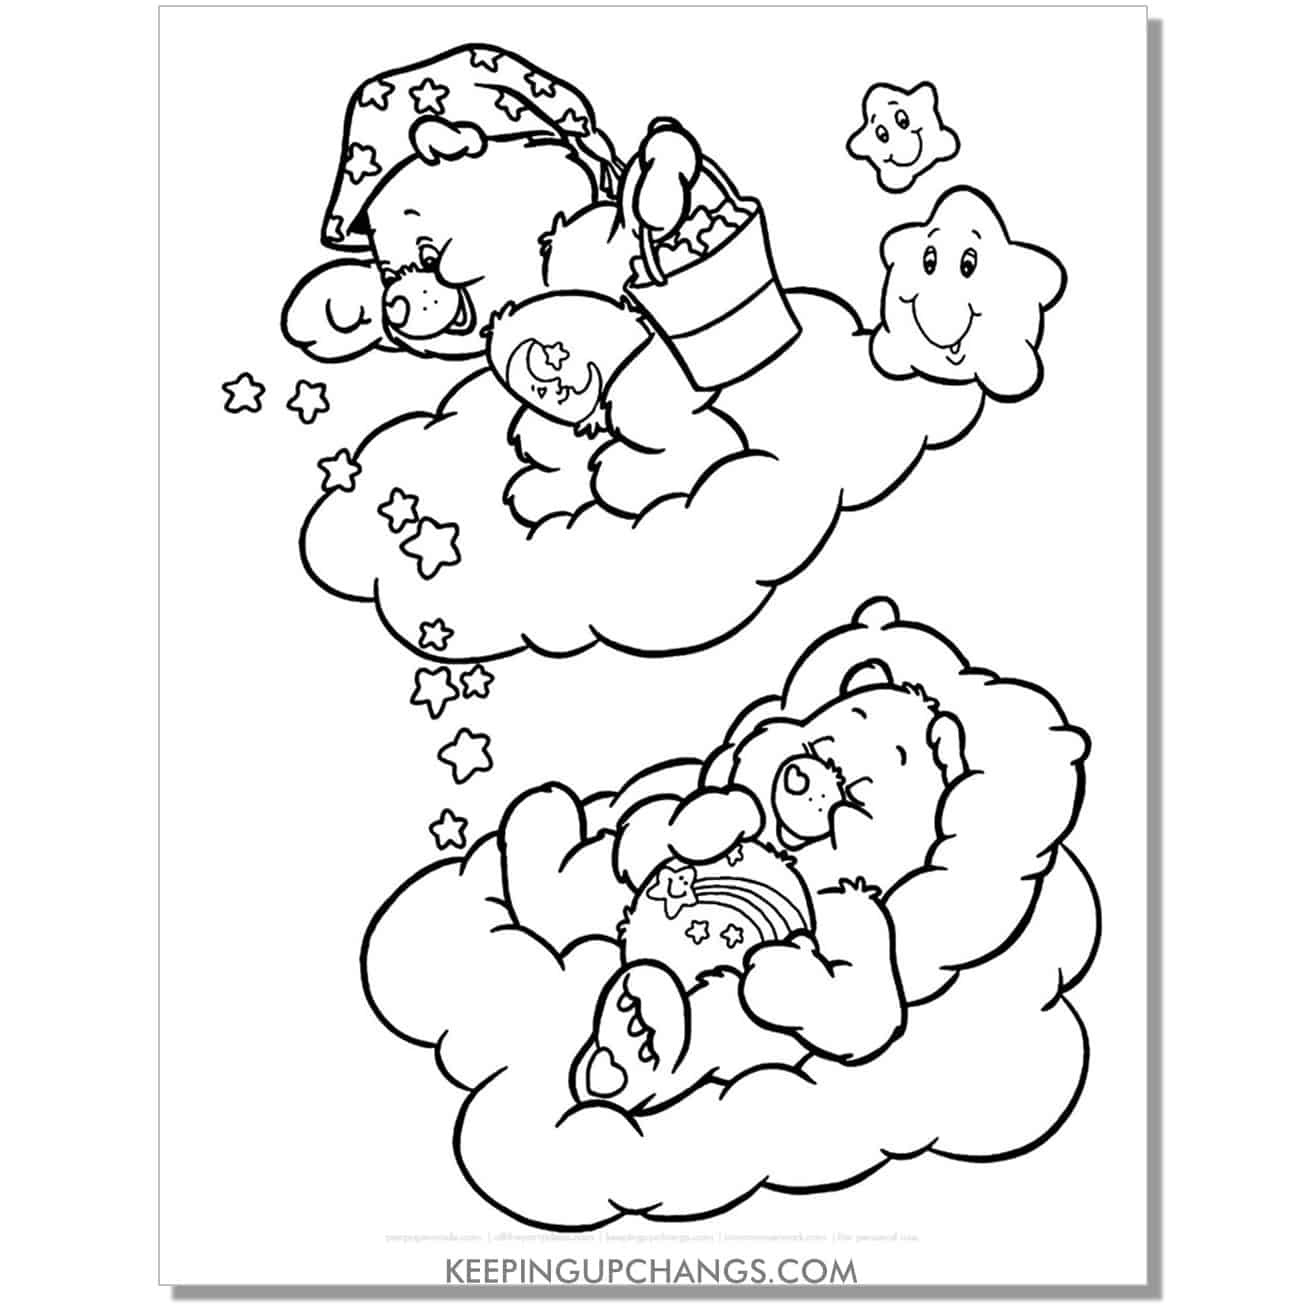 bedtime and wish care bears going to sleep coloring page.